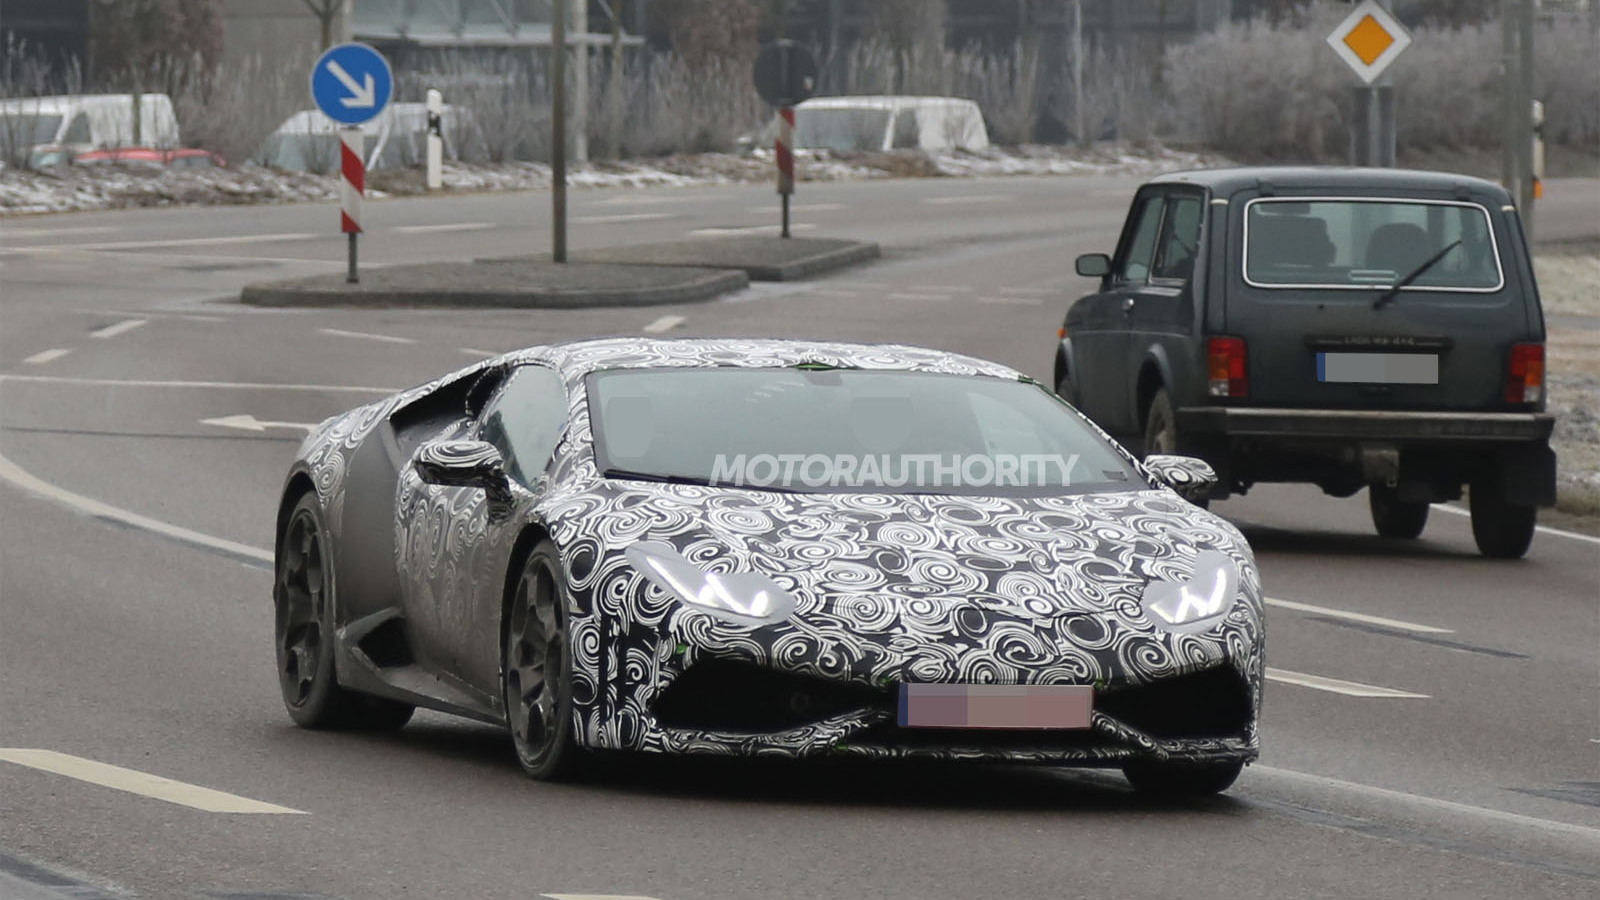 2015 Lamborghini Huracan (Gallardo replacement) spy shots